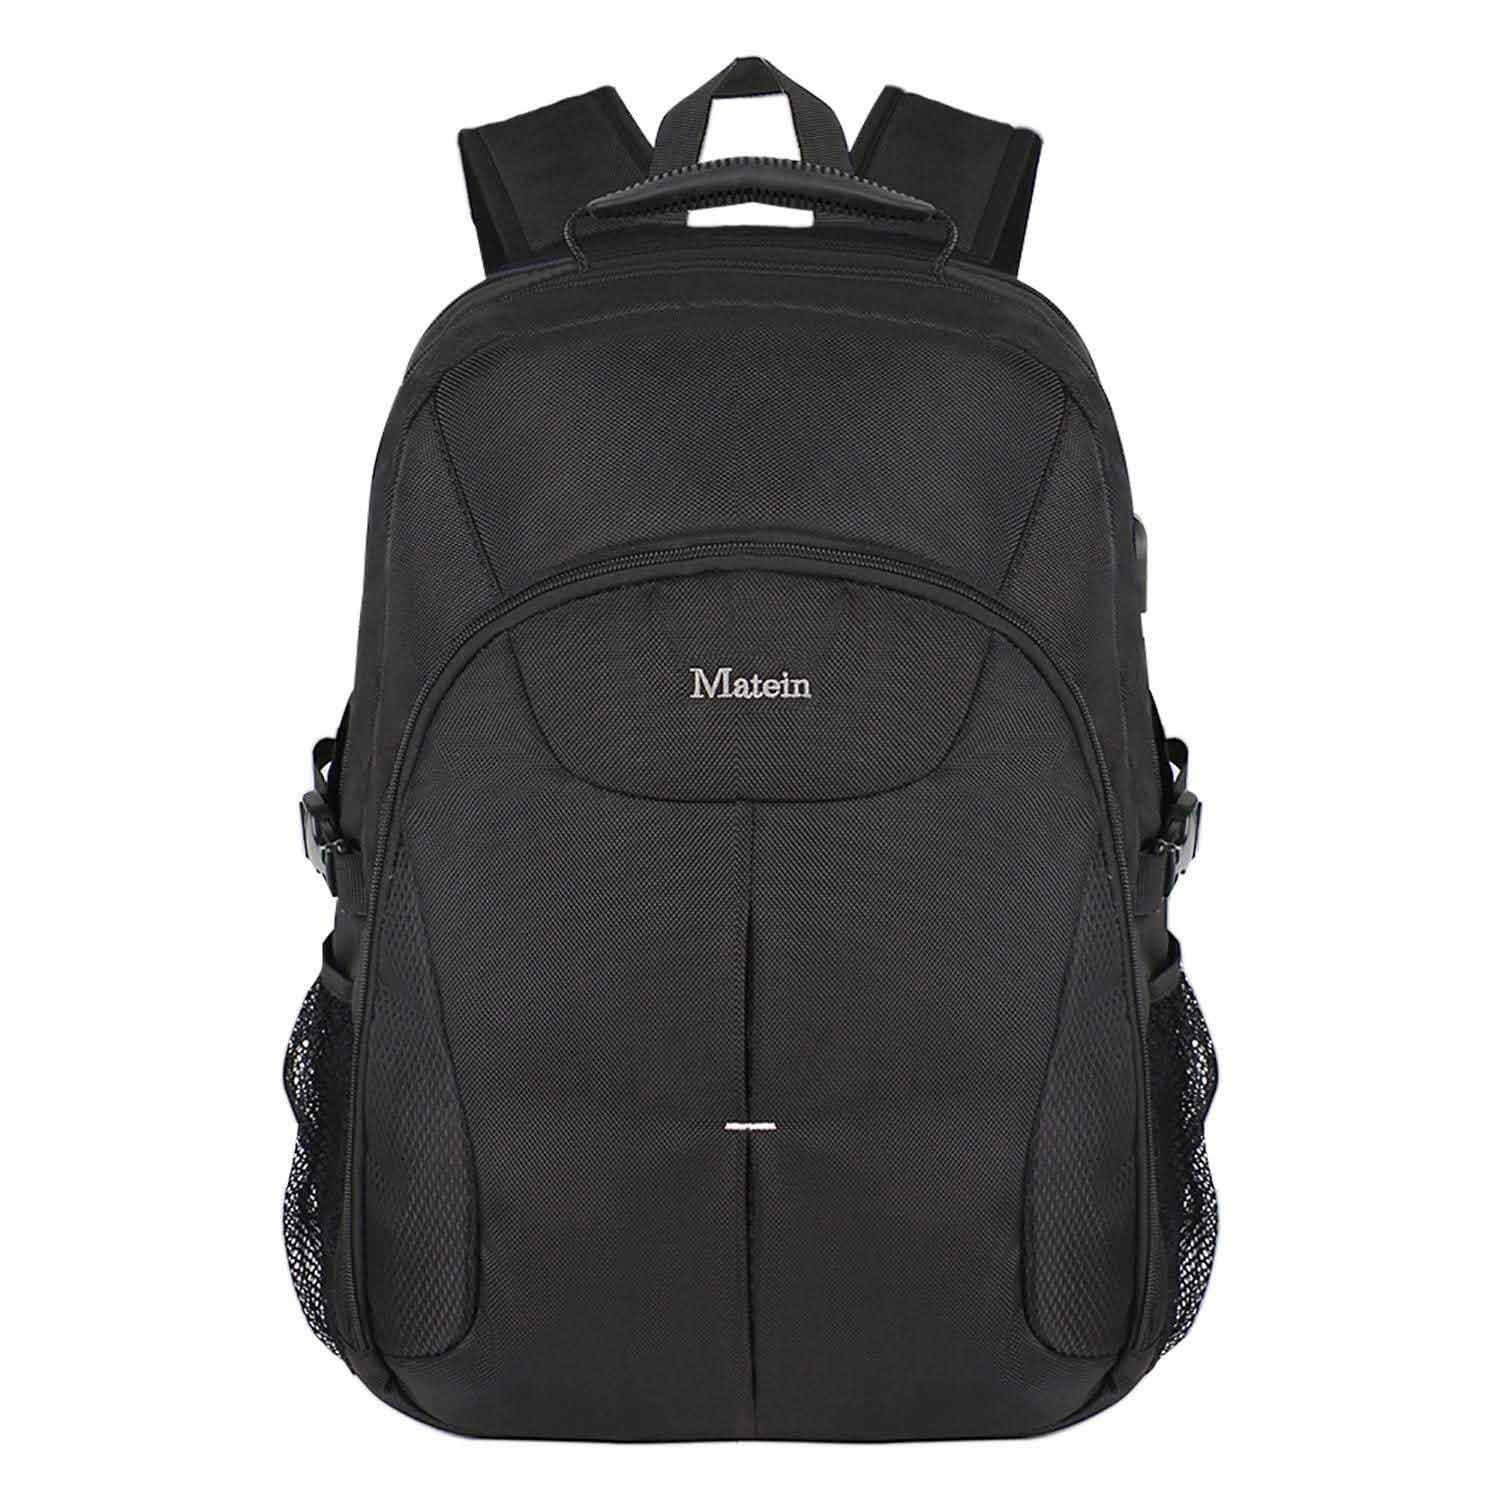 Matein AIO Travel Backpack - Matein